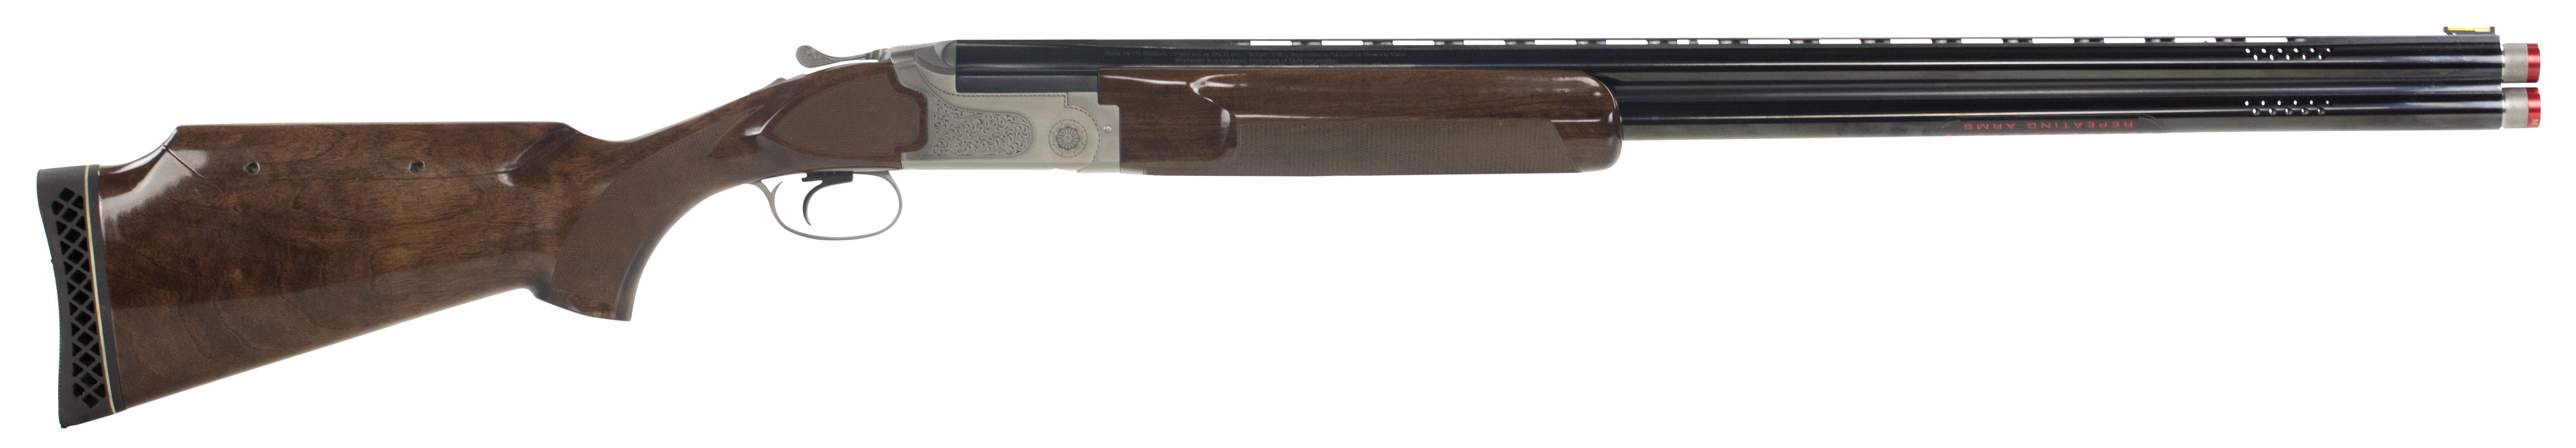 Winchester 101 Pigeon Trap Over/Under Shotgun 2.75'' 12 Gauge 30'' Nickeled Aluminum Alloy - Turkish Walnut